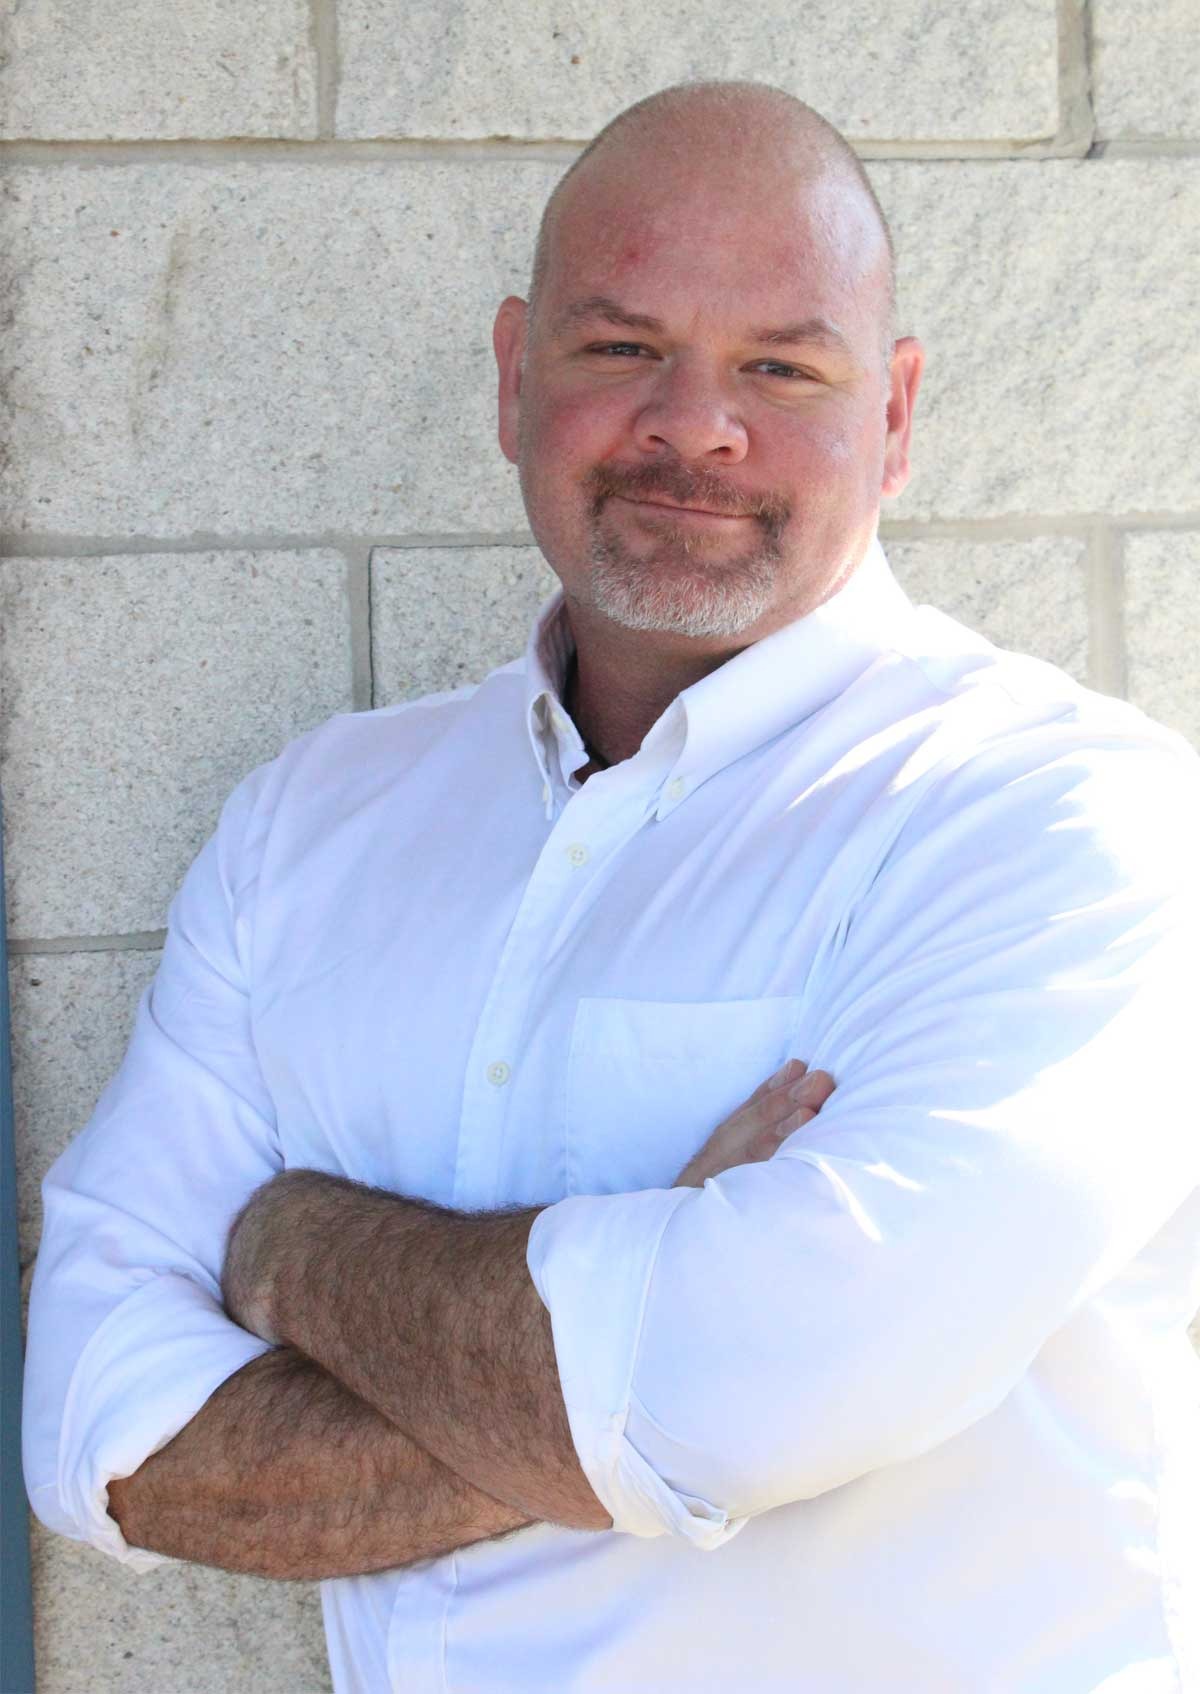 Steve Green, JD MBA, Founding Partner standing with his arms crossed wearing a white shirt on the Archangel Law Group website homepage